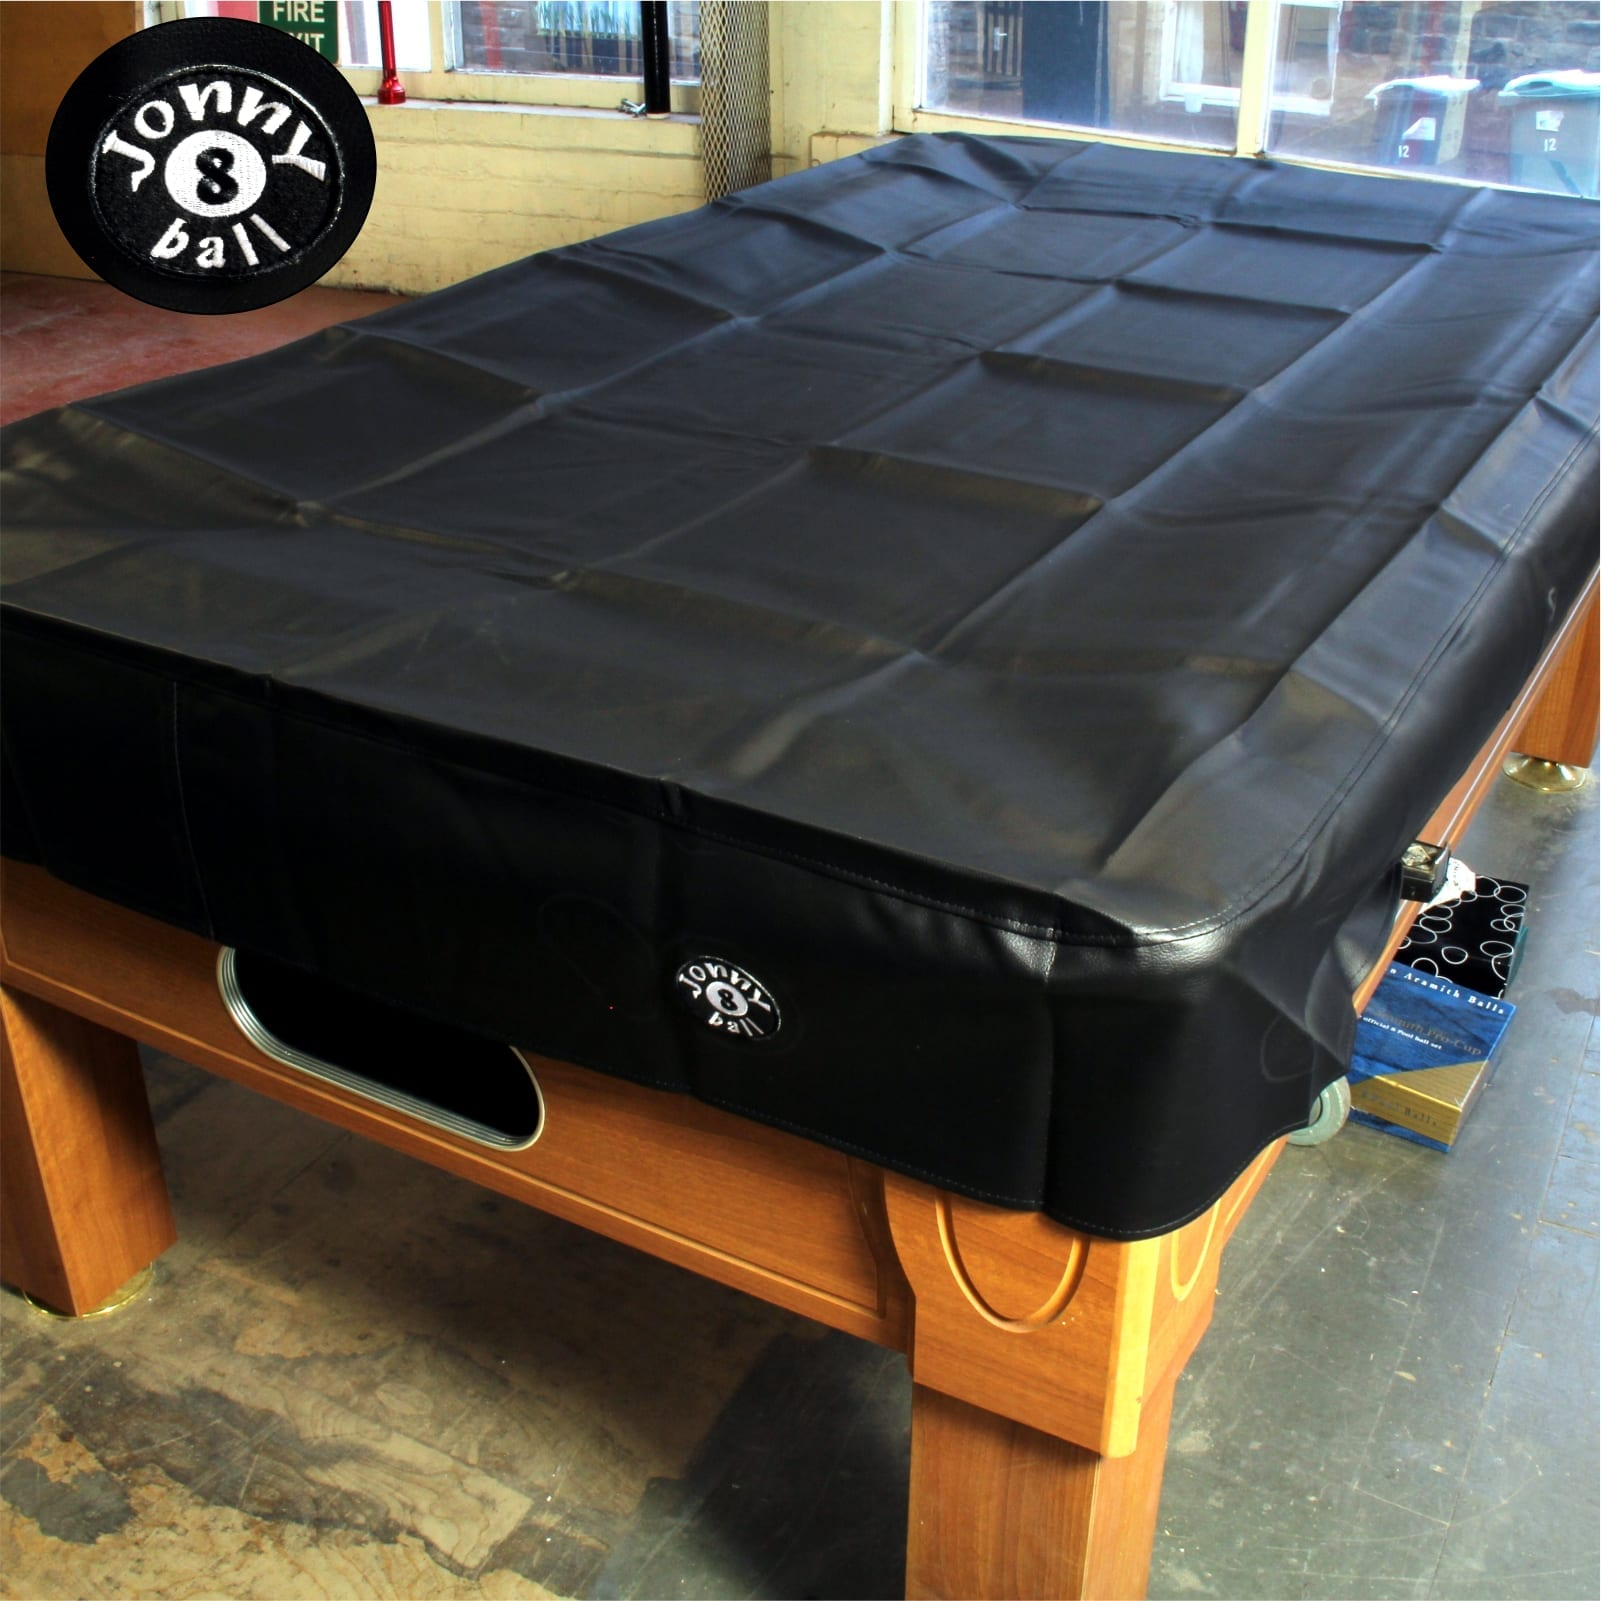 JONNY 8 BALL 7FT BLACK HEAVY DUTY WATER RESISTANT POOL TABLE COVER**